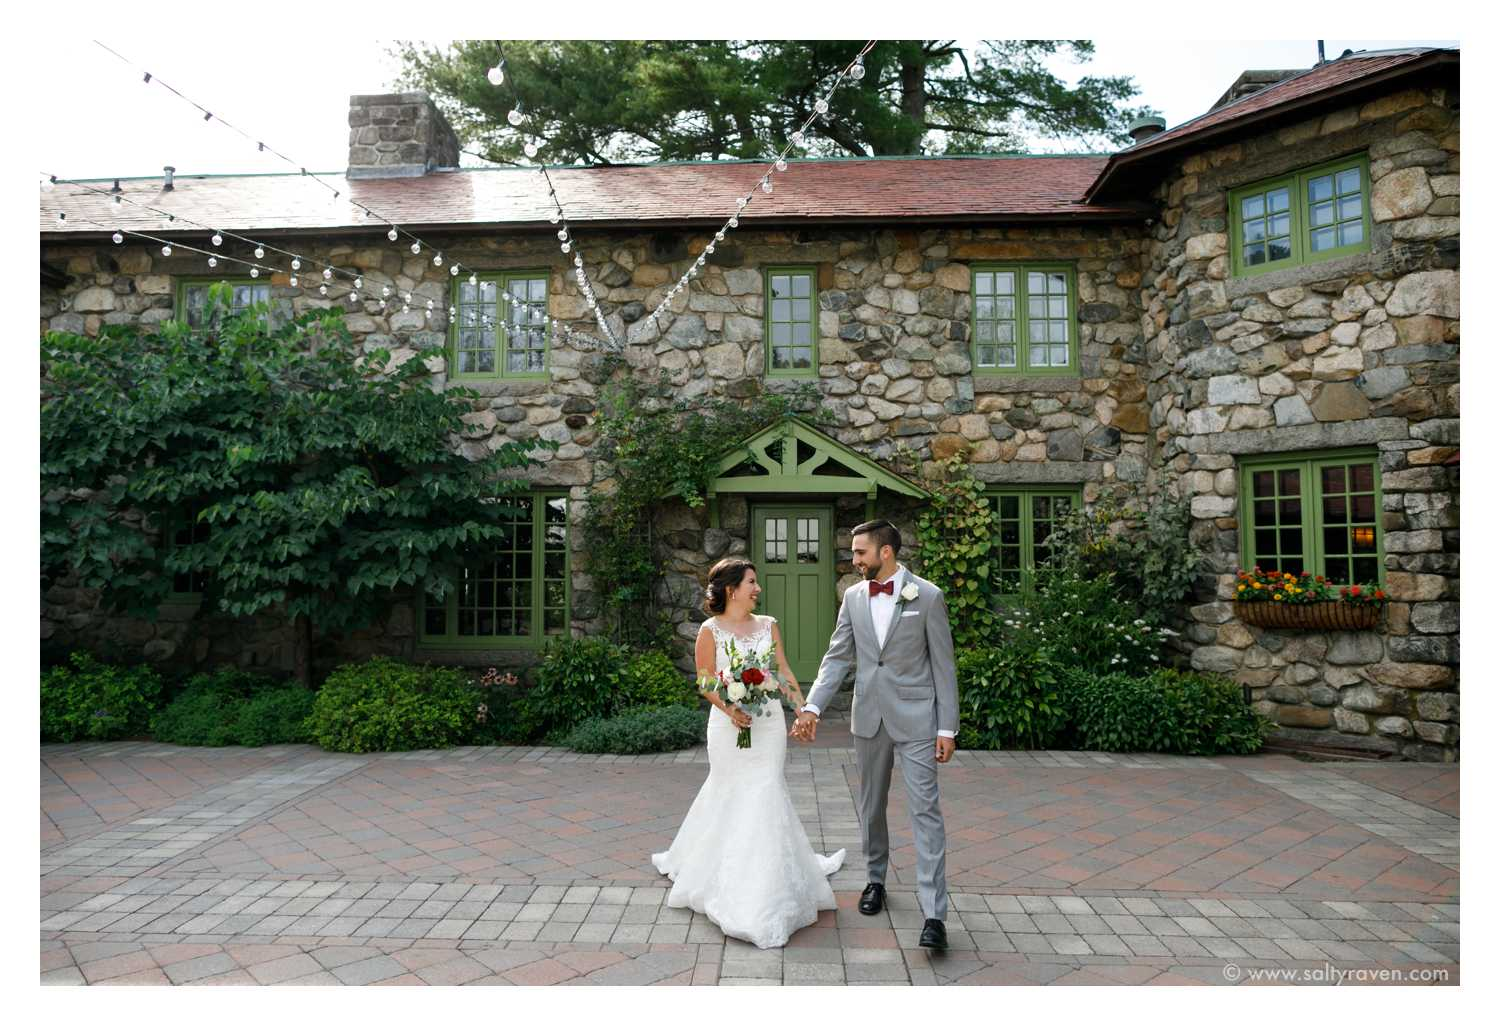 Willowdale Estate Wedding, couple walks hand in hand in front of stone building.